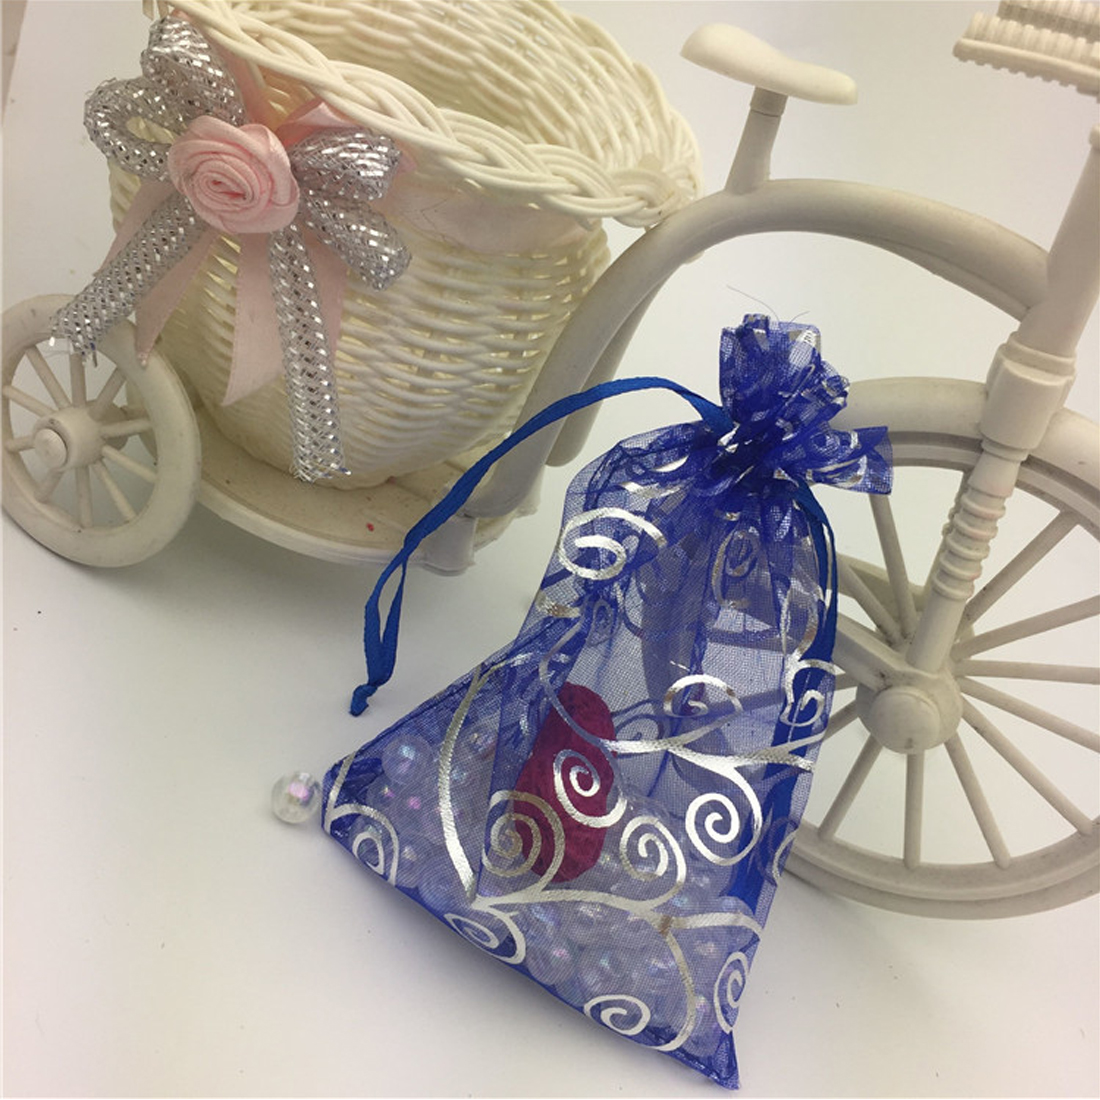 Cool 100 pcs wedding of the Christmas bags for gift bag Organza bags packing party event decoration of the wedding supplies